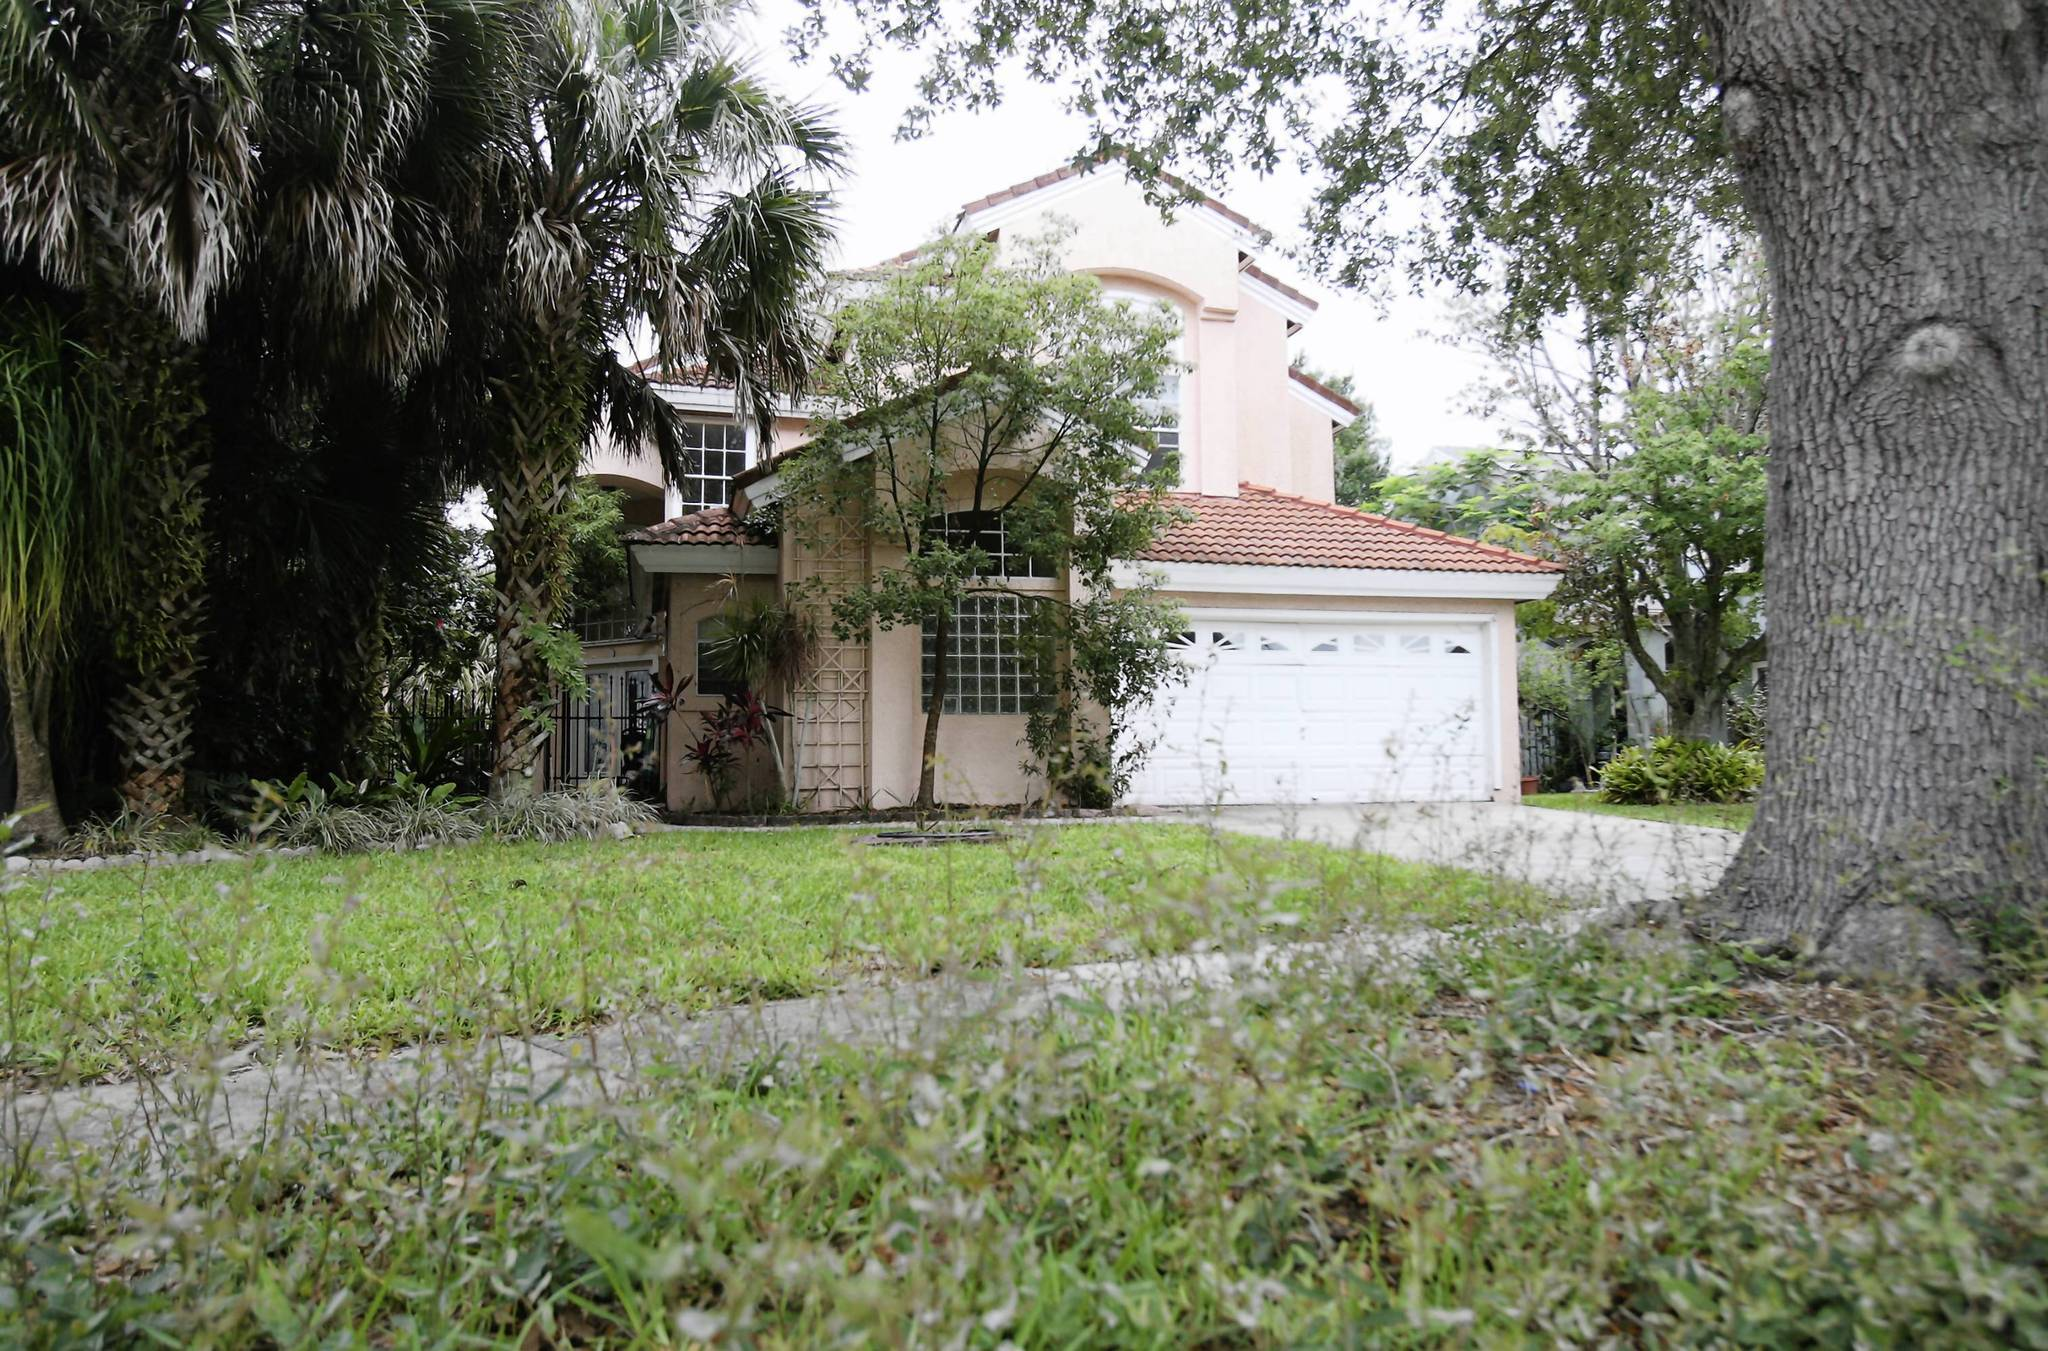 This house on Mystic Cove Drive in southeast Orlando was bought at public auction earlier this year. Photo taken on Friday, June 1, 2012. House was purchased in February by the top purchaser of local houses sold at public auction. A company called American Homes 4 Rent has purchased about 1,000 foreclosed houses in hard-hit states, including 150 houses at Orange Countys online foreclosure auctions since the start of the year  about 10 times more than any other buyers.. (Tom Benitez/Orlando Sentinel)